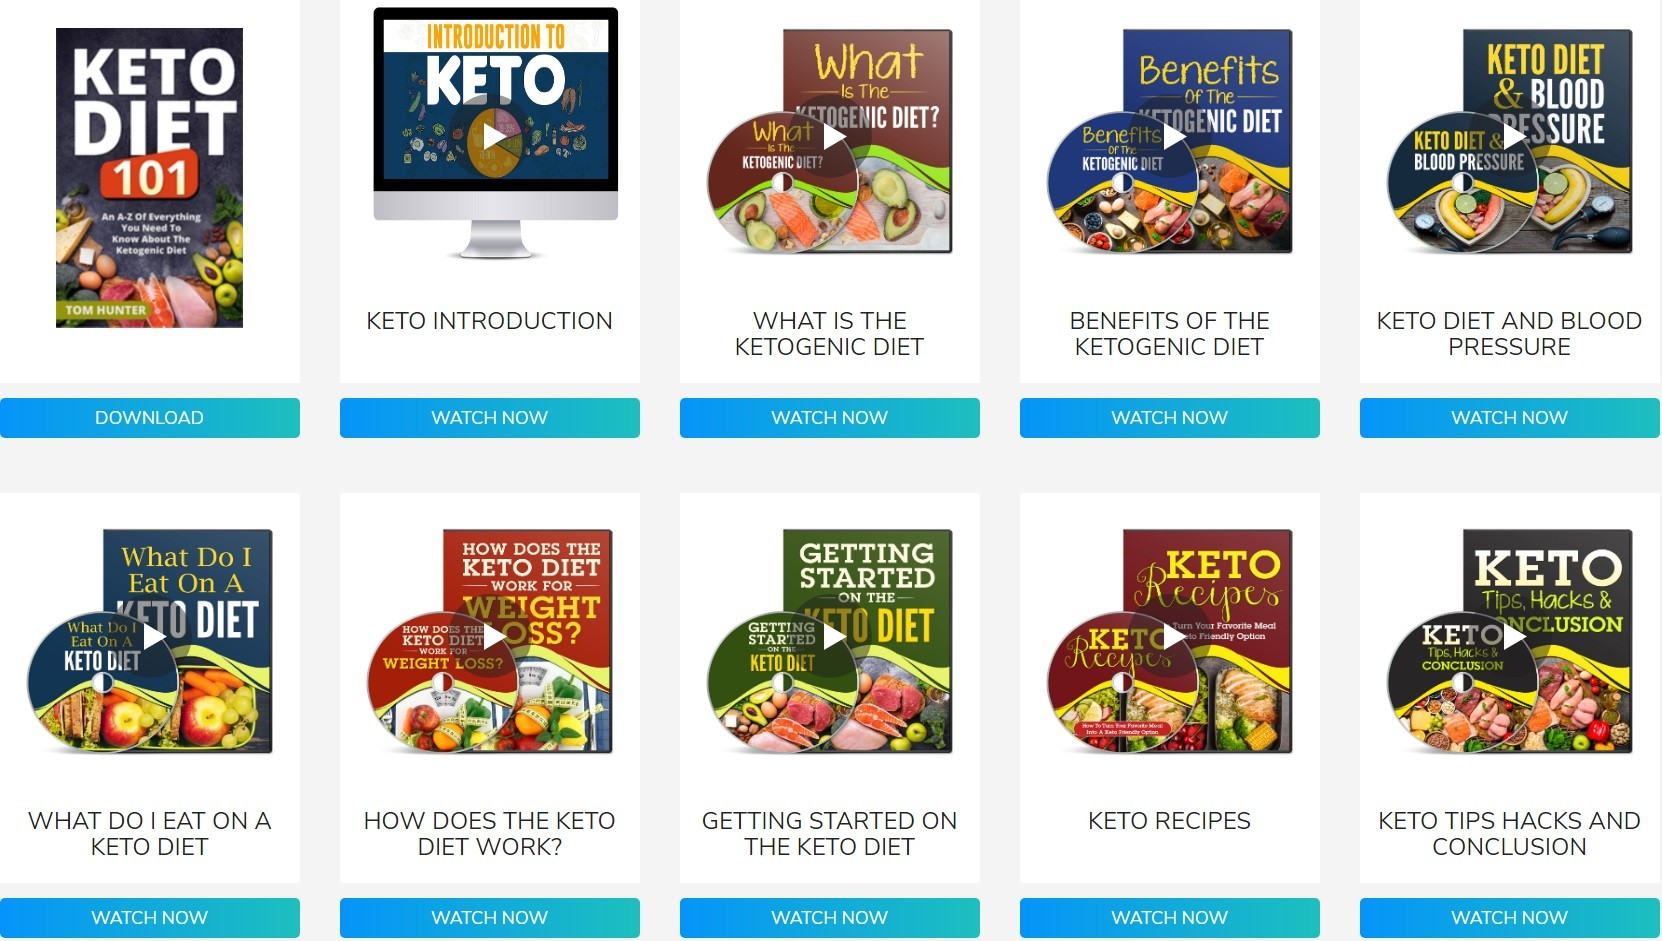 8 Week Custom Keto Diet Plan Video Resources and eBook